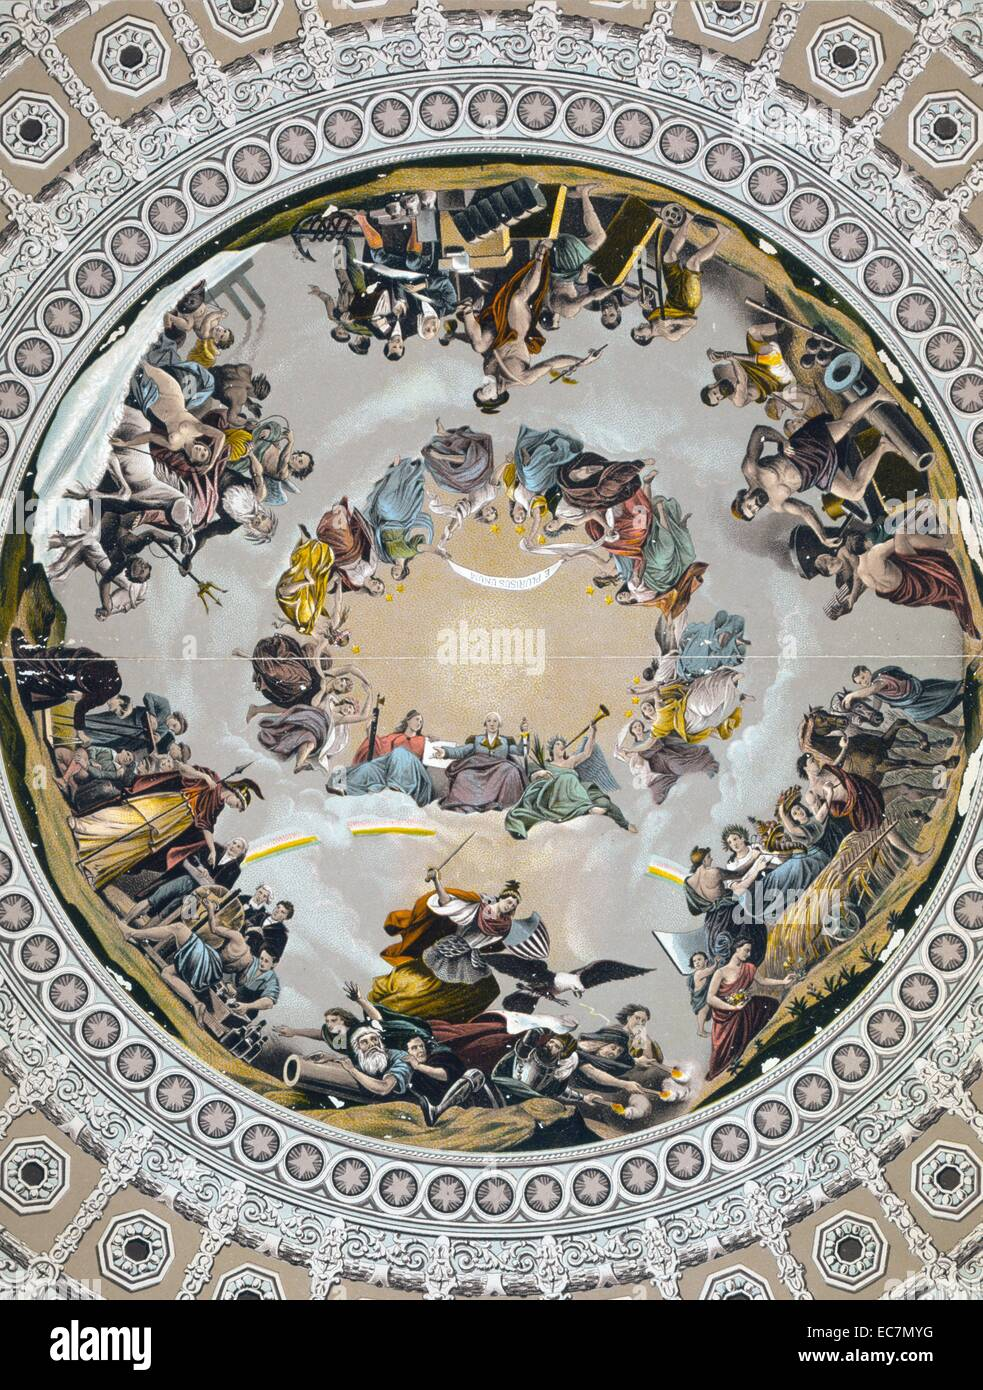 Brumidi's allegorical painting, in dome of U.S. Capitol - Stock Image